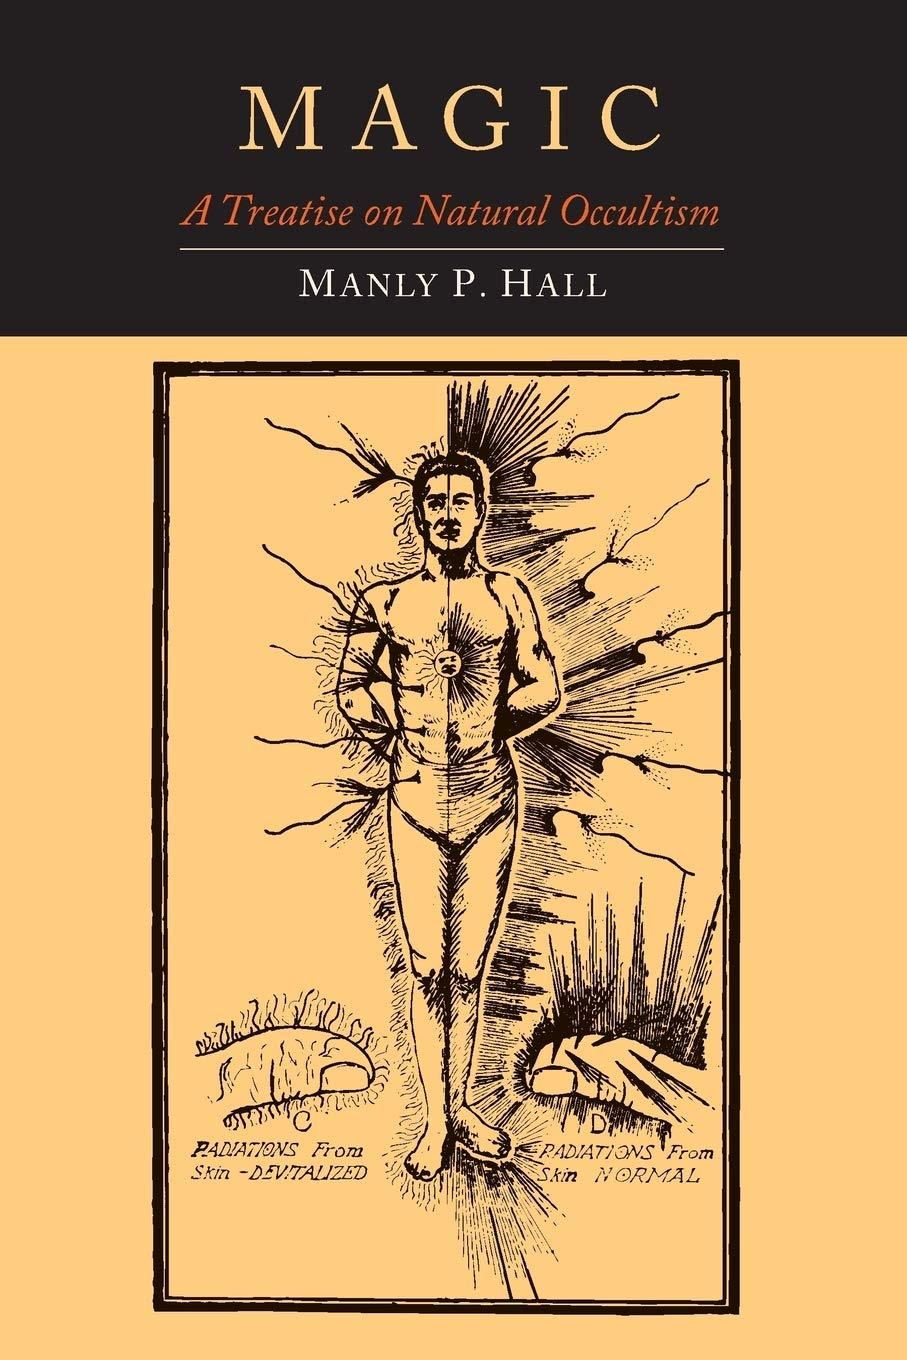 Magic: A Treatise on Natural Occultism